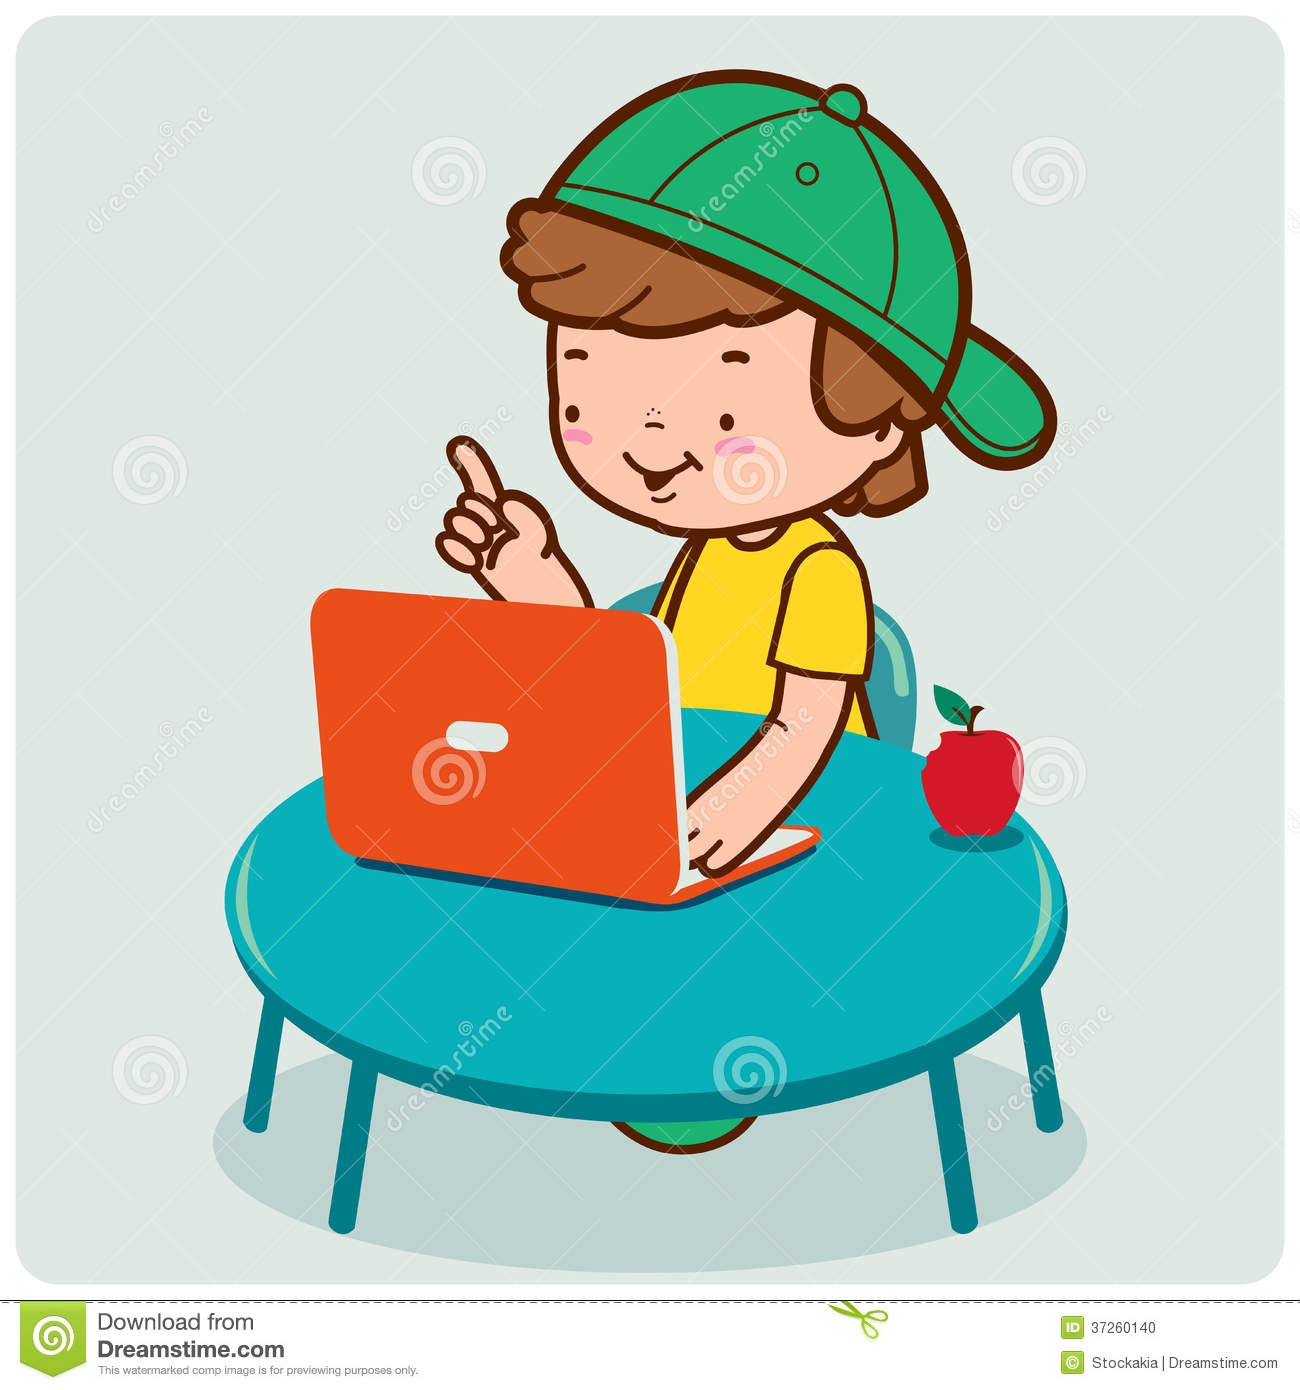 Surfing The Internet Clipart.